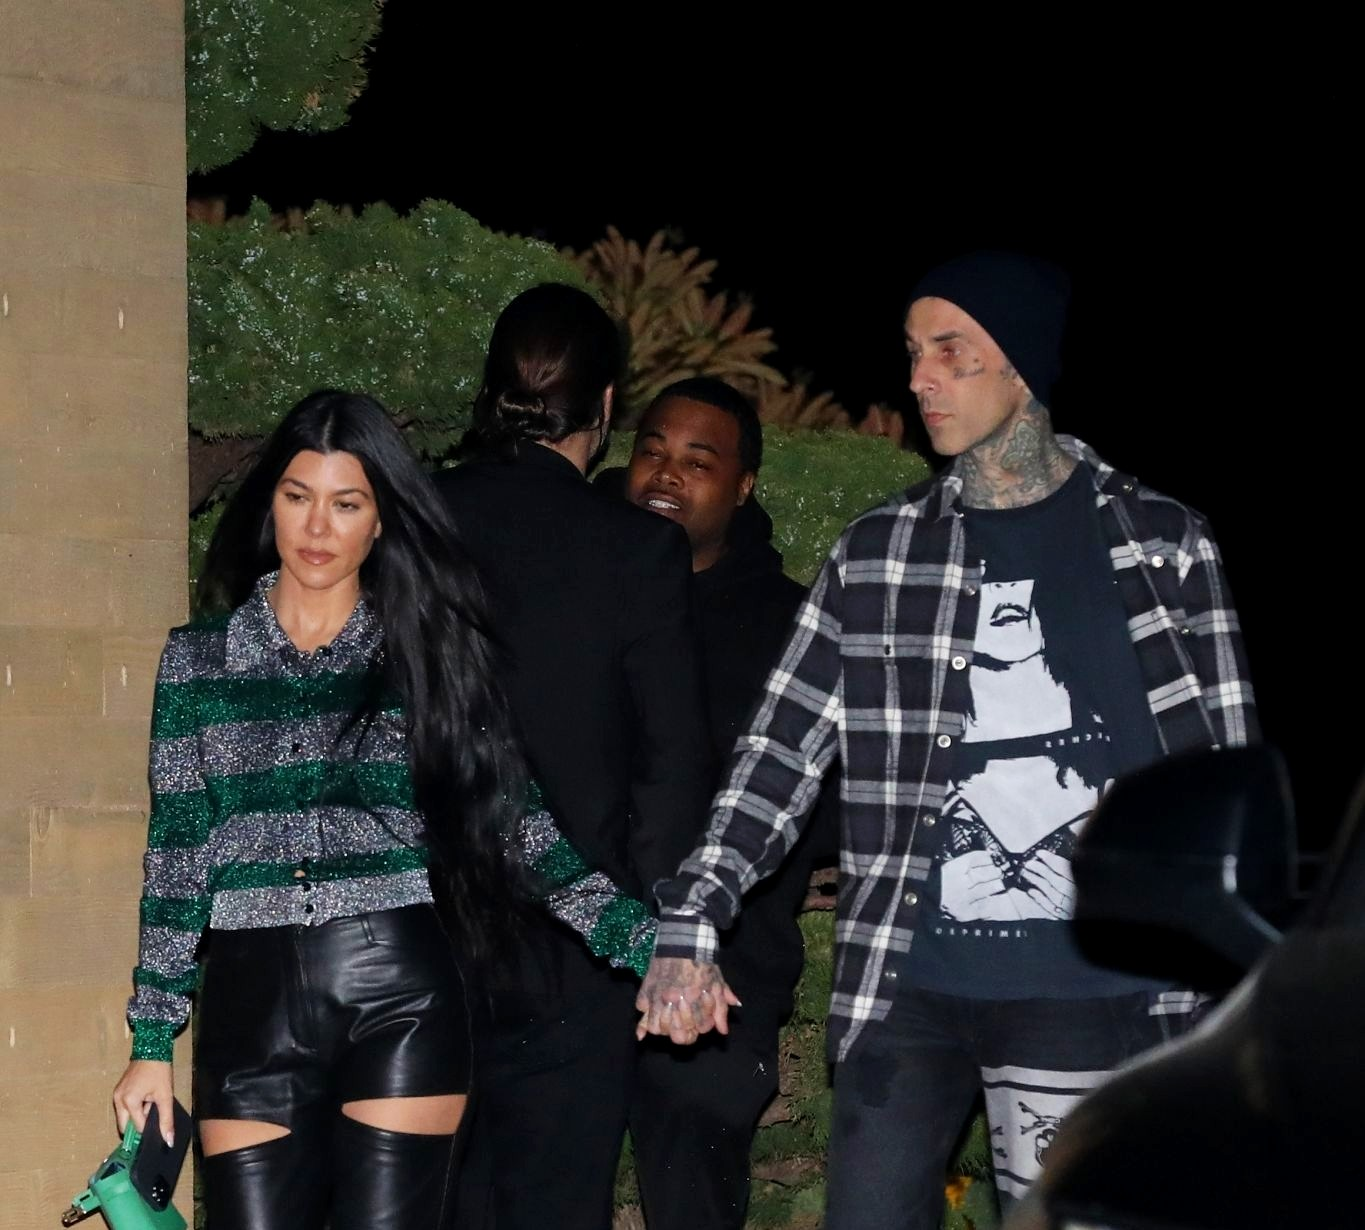 Kourtney Kardashian og Travis Barker på vei ut av restauranten Nobu i Malibu utenfor Los Angeles (Photographer Group/MEGA/GC Images)